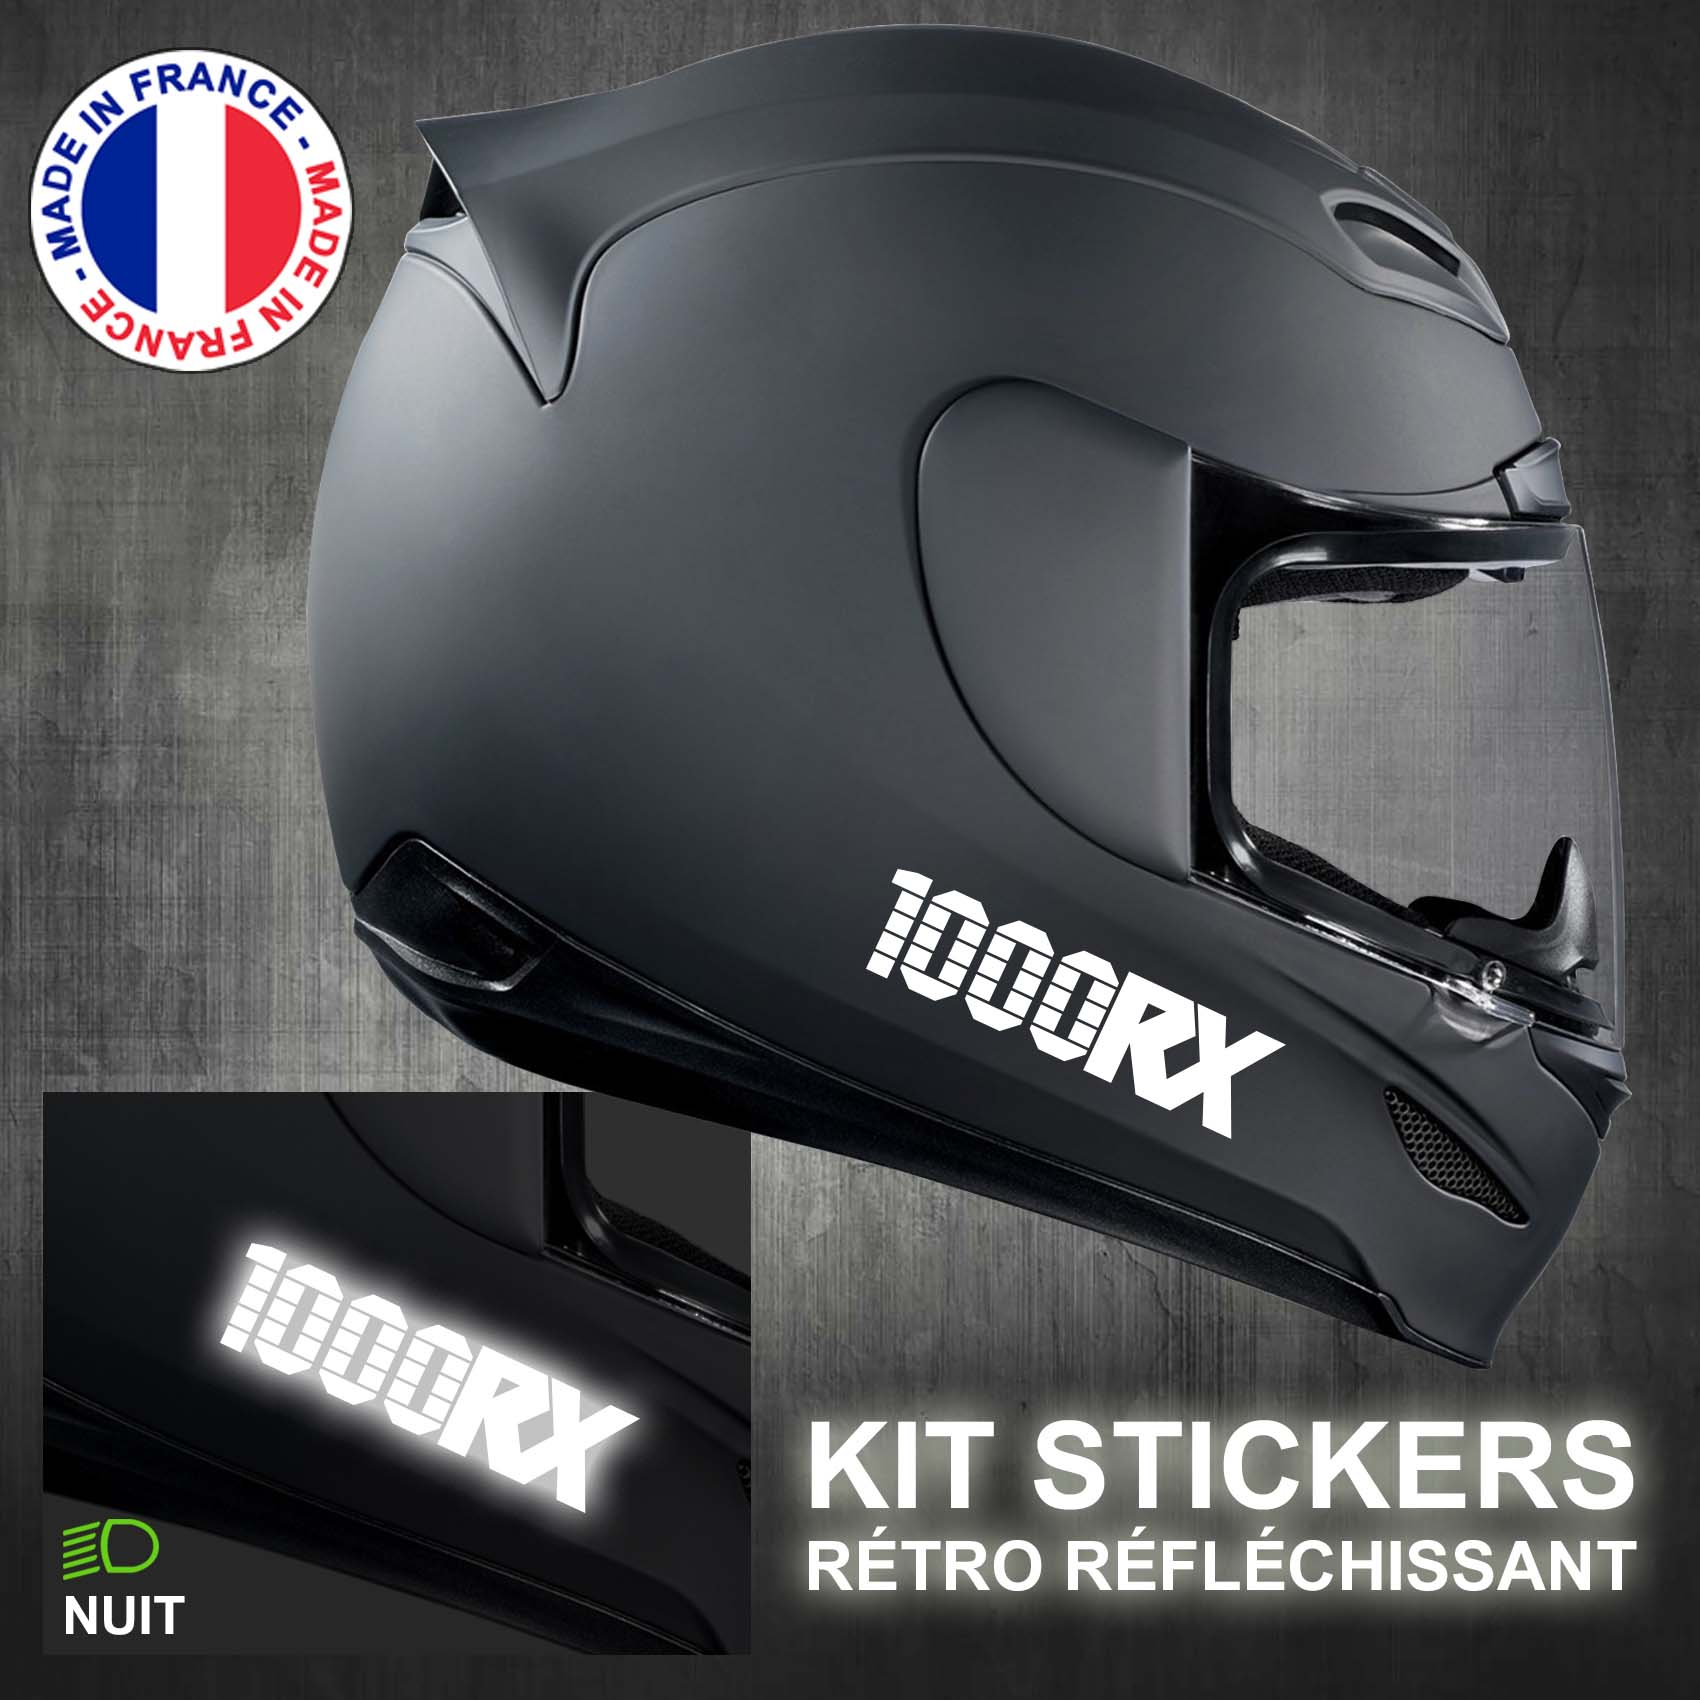 stickers-casque-moto-1000rx-retro-reflechissant-autocollant-noir-moto-velo-tuning-racing-route-sticker-casques-adhesif-scooter-nuit-securite-decals-personnalise-personnalisable-min